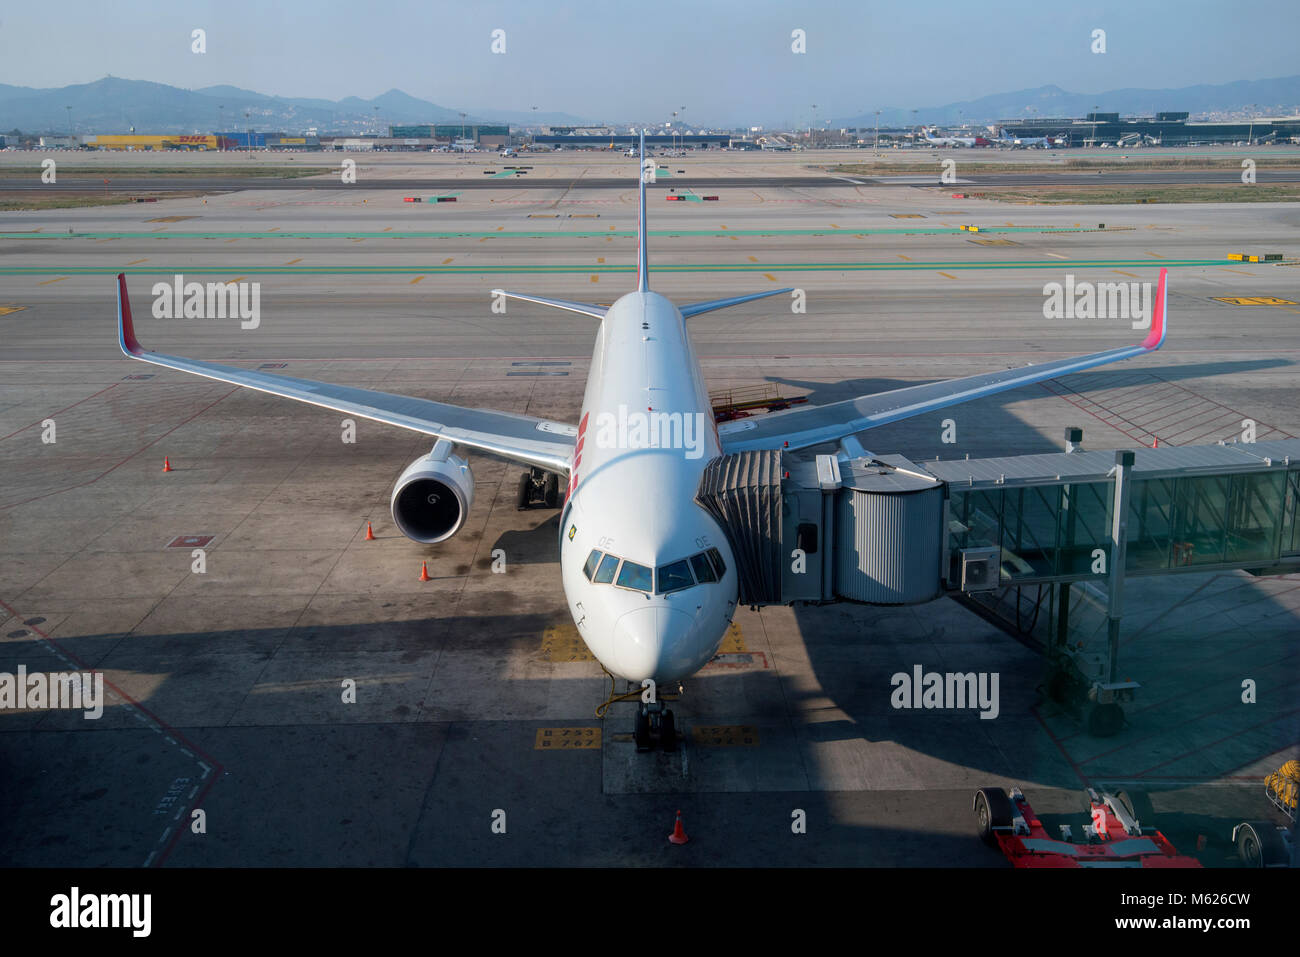 Looking out to airside at Barcelona airport - Stock Image